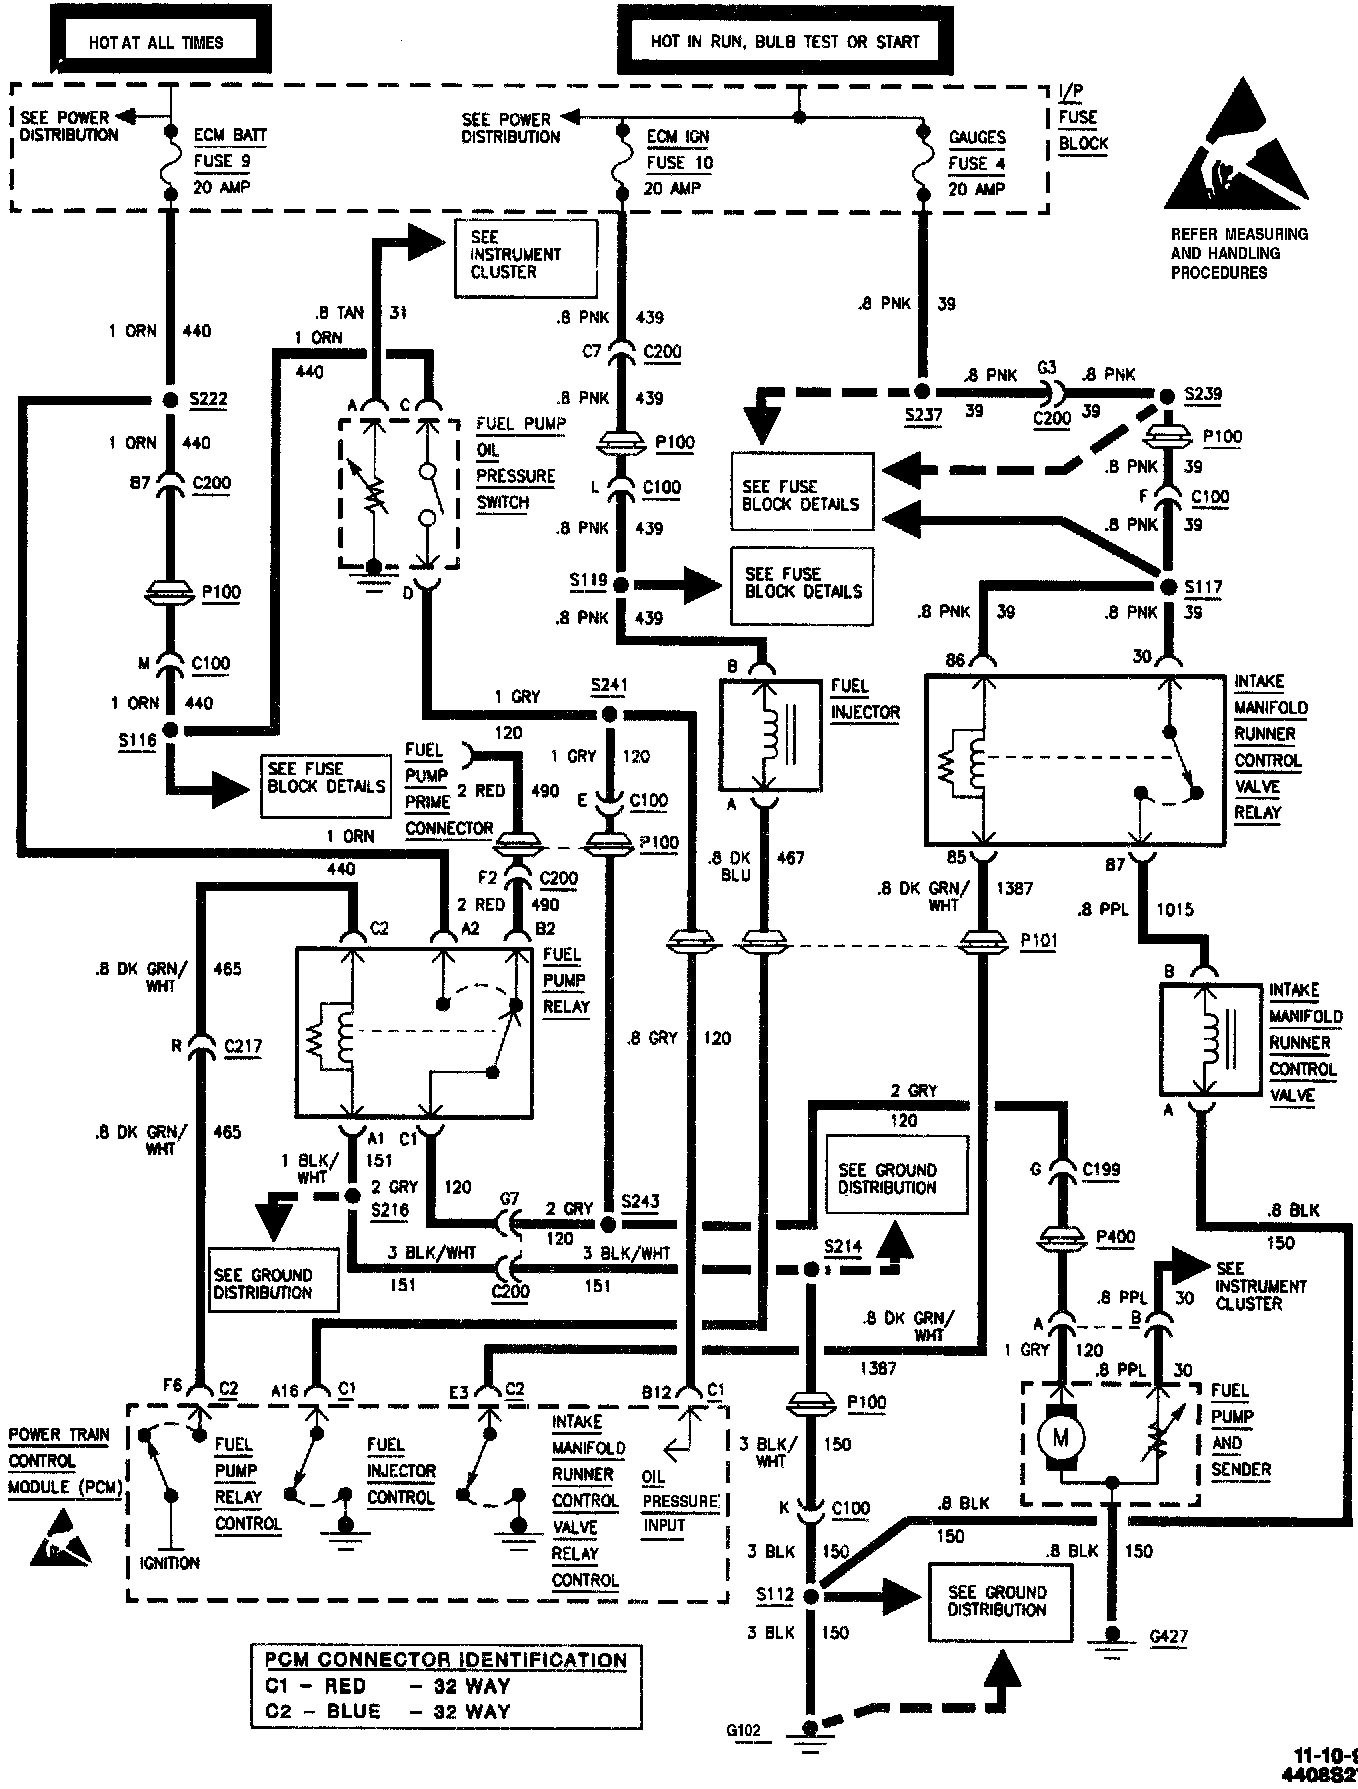 hight resolution of 1988 chevy s10 wiring diagram wiring diagram blogs 95 chevy s10 vacuum diagram 95 chevy s10 wiring diagram